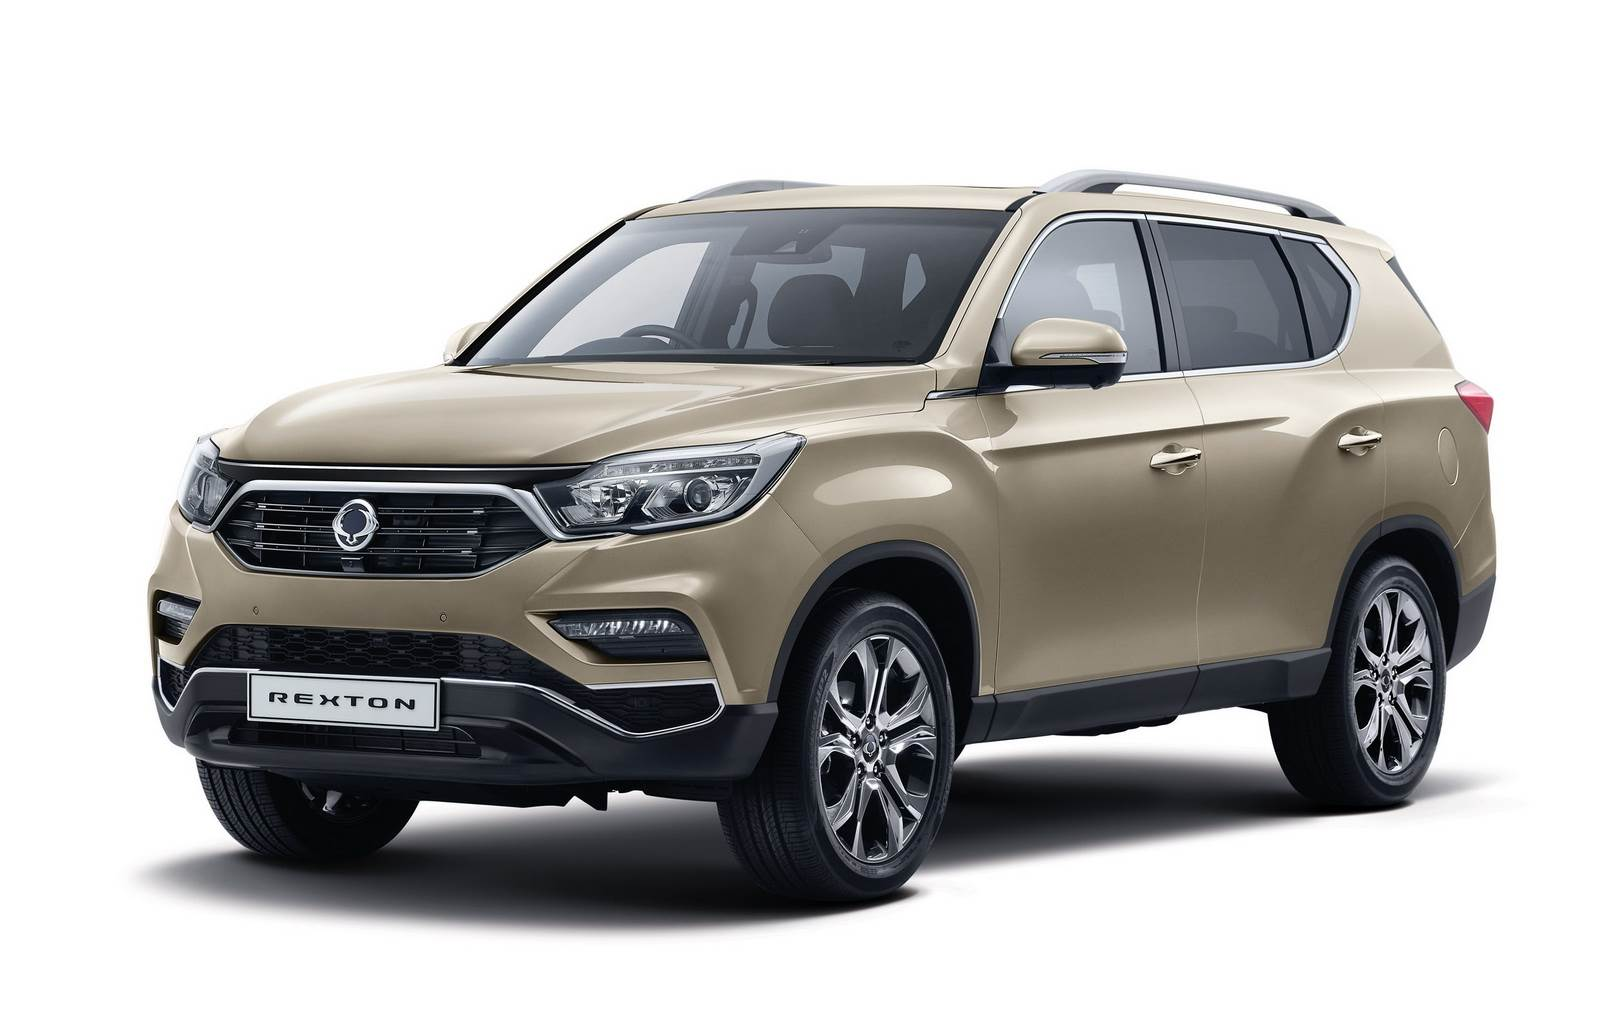 2017 SsangYong Rexton image gallery